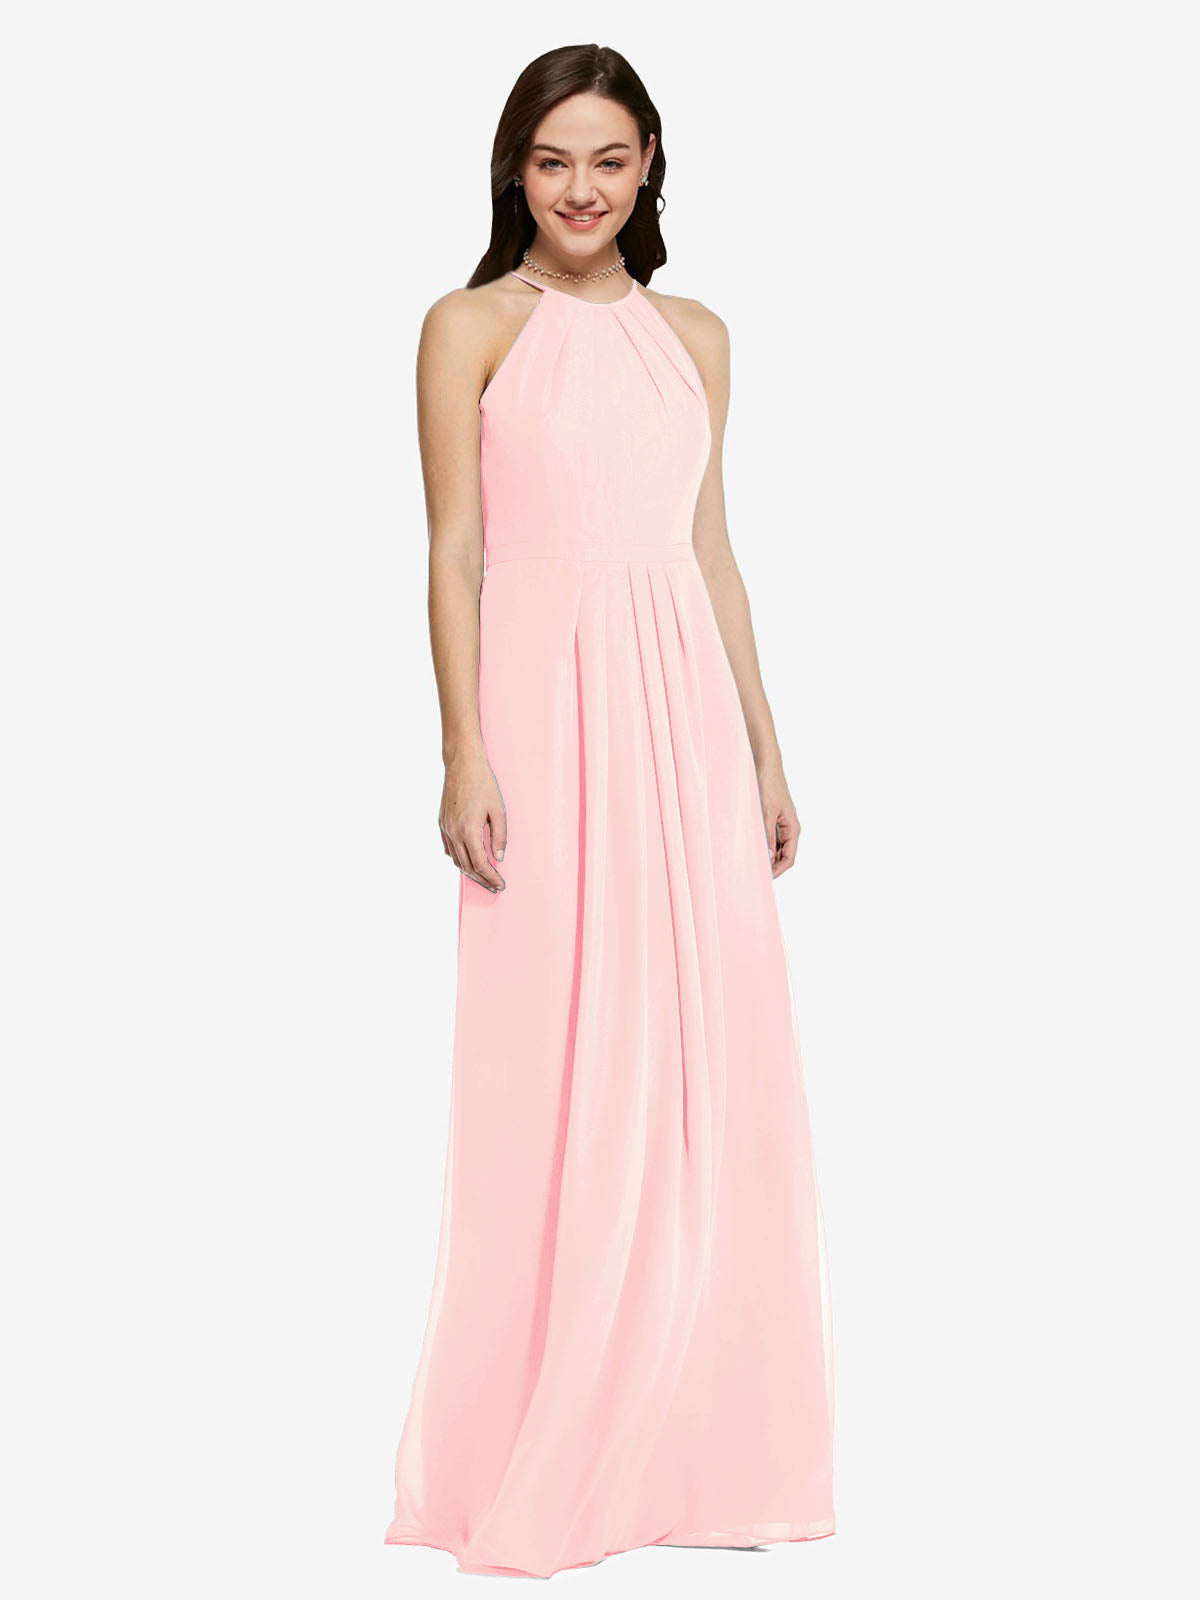 Long Sheath High Neck Halter Sleeveless Pink Chiffon Bridesmaid Dress Koloti